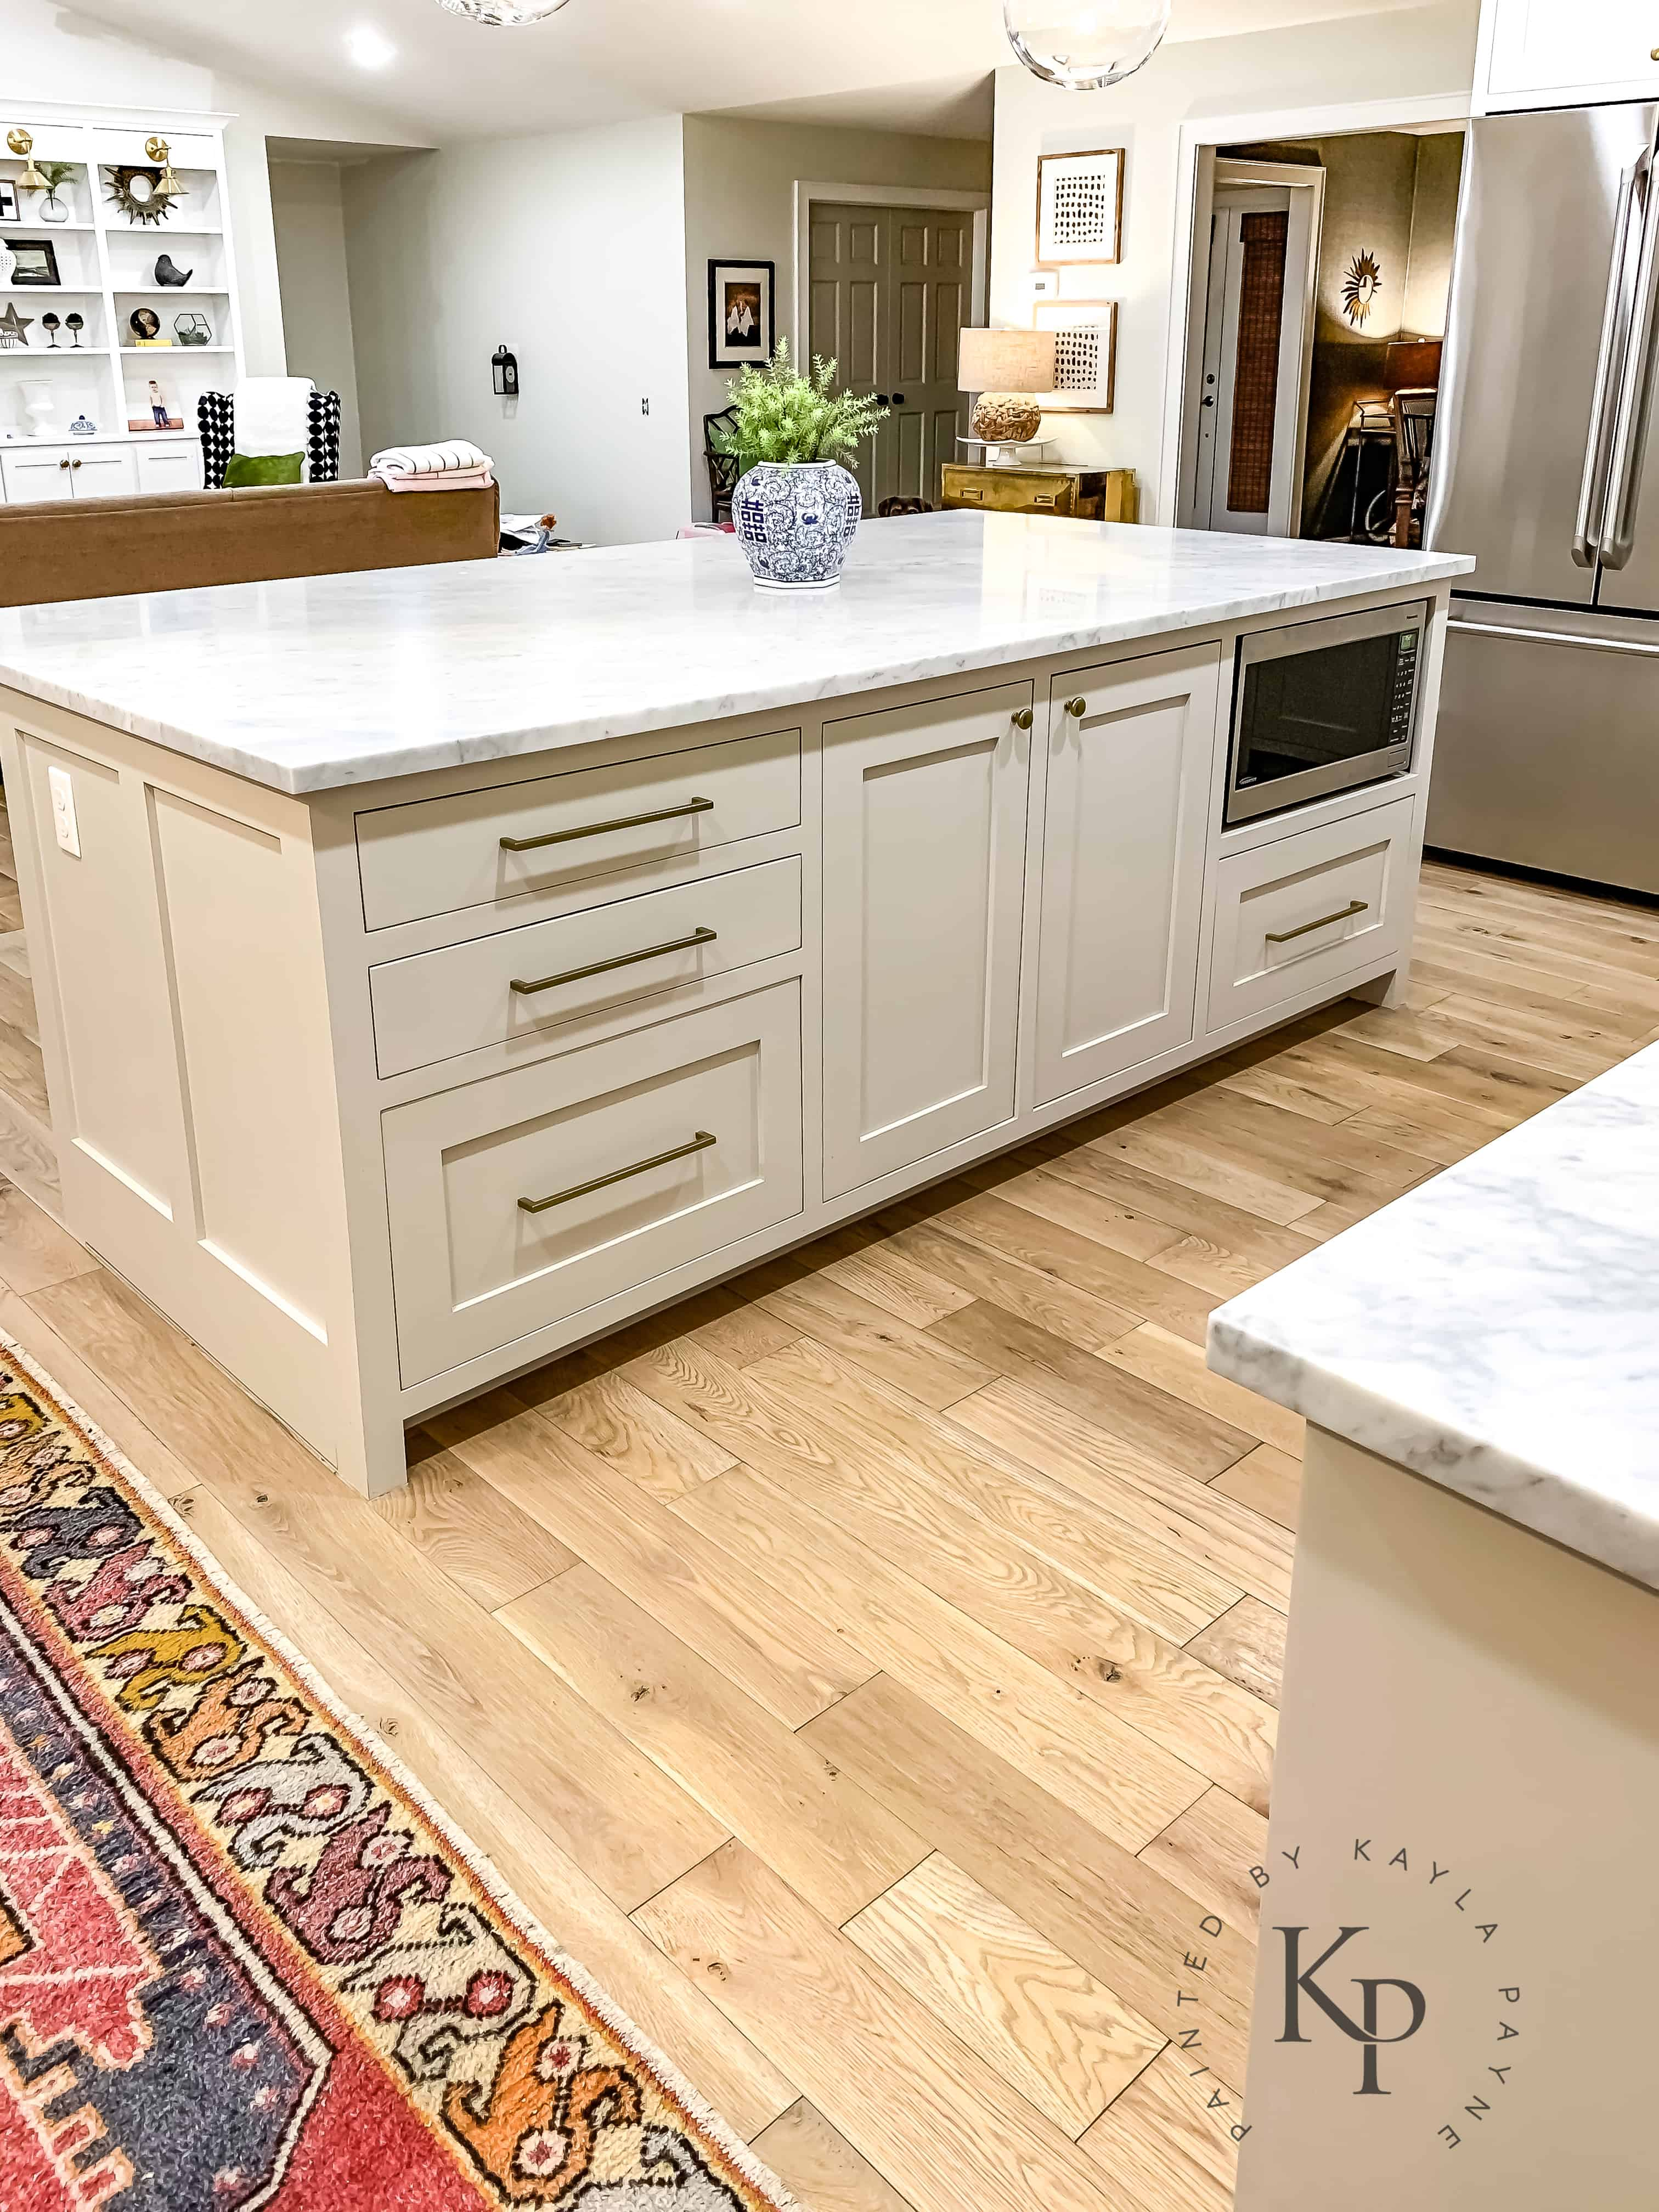 astounding white kitchen cabinets wood floors | Carrara Marble Countertops, marble countertop island ...